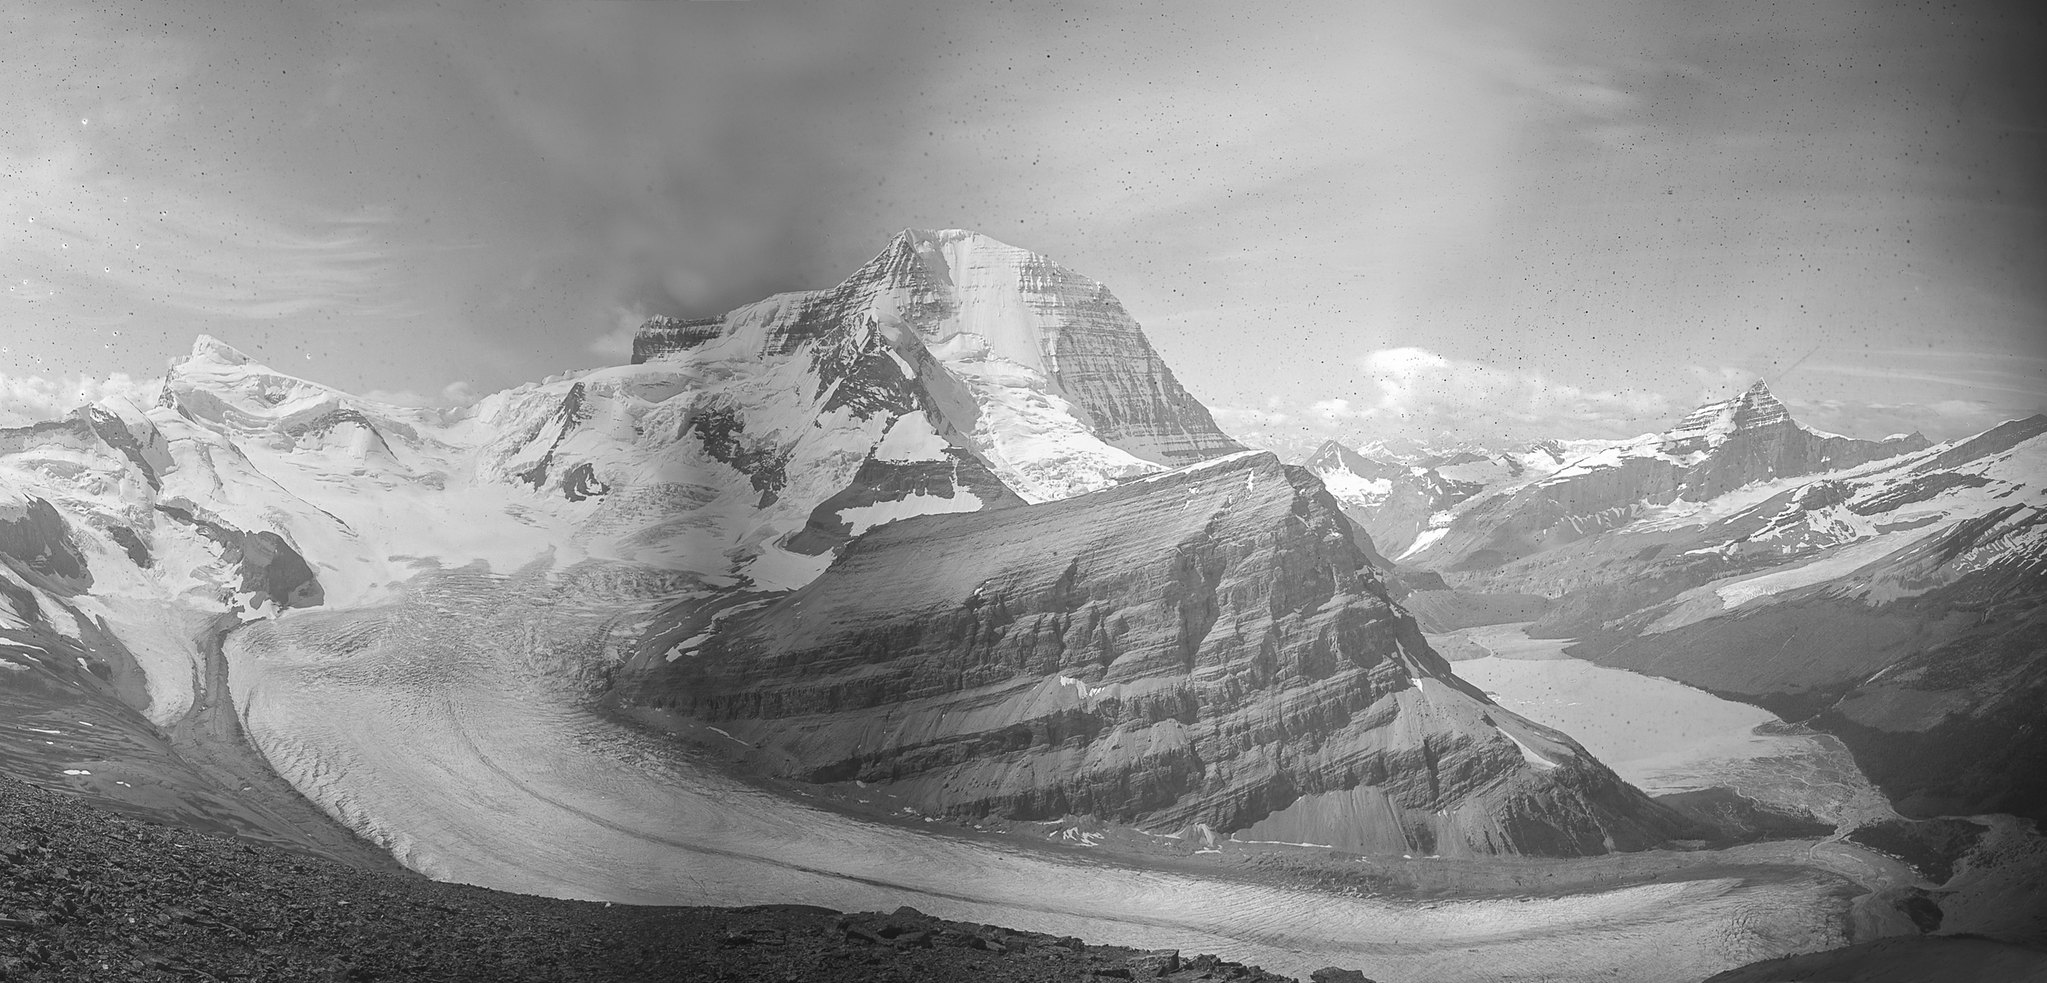 Mt. Robson from Ptarmigan Ridge - A. O. Wheeler, 1911